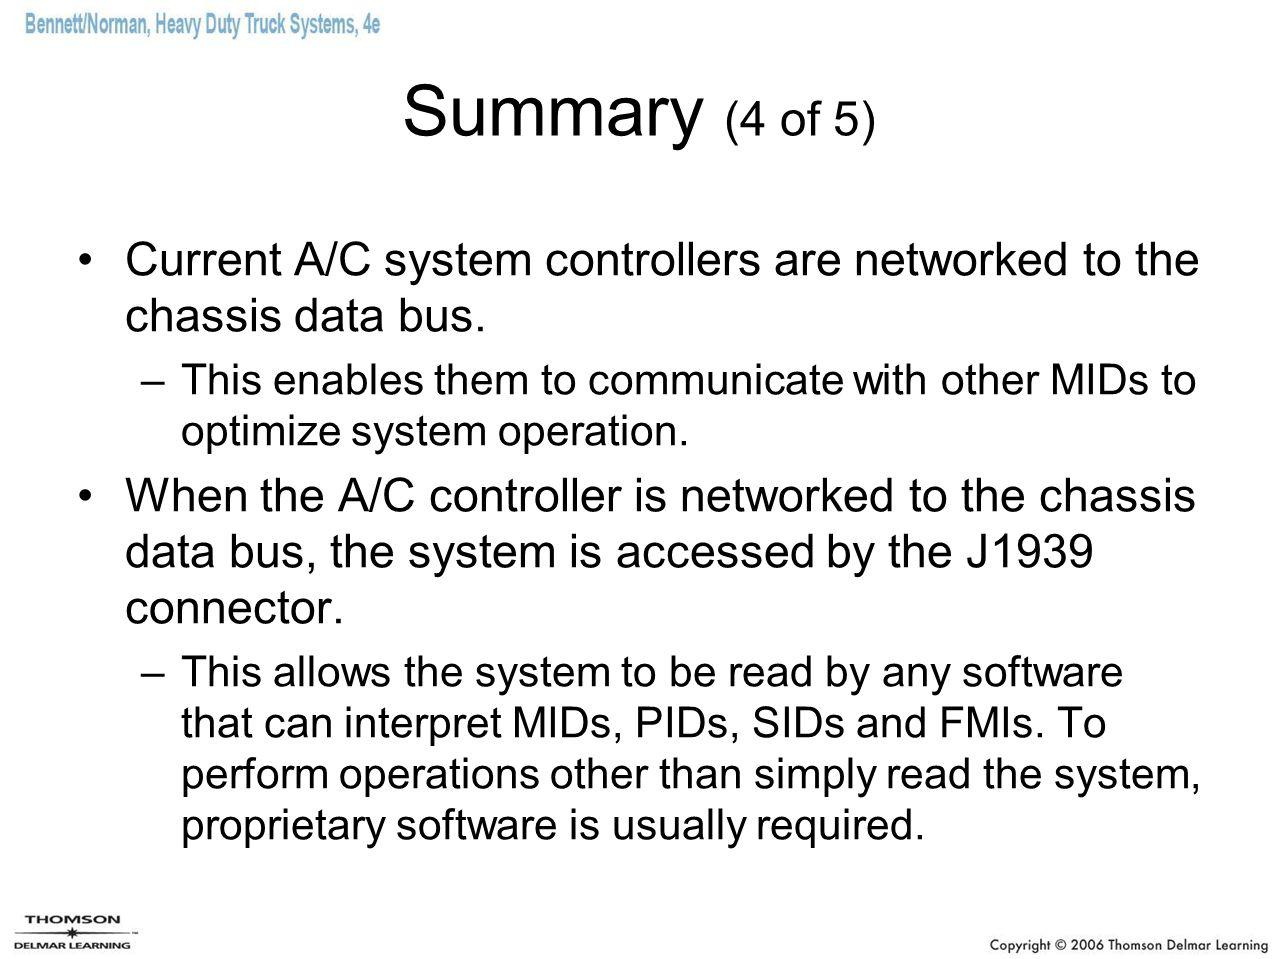 Summary (4 of 5) Current A/C system controllers are networked to the chassis data bus.